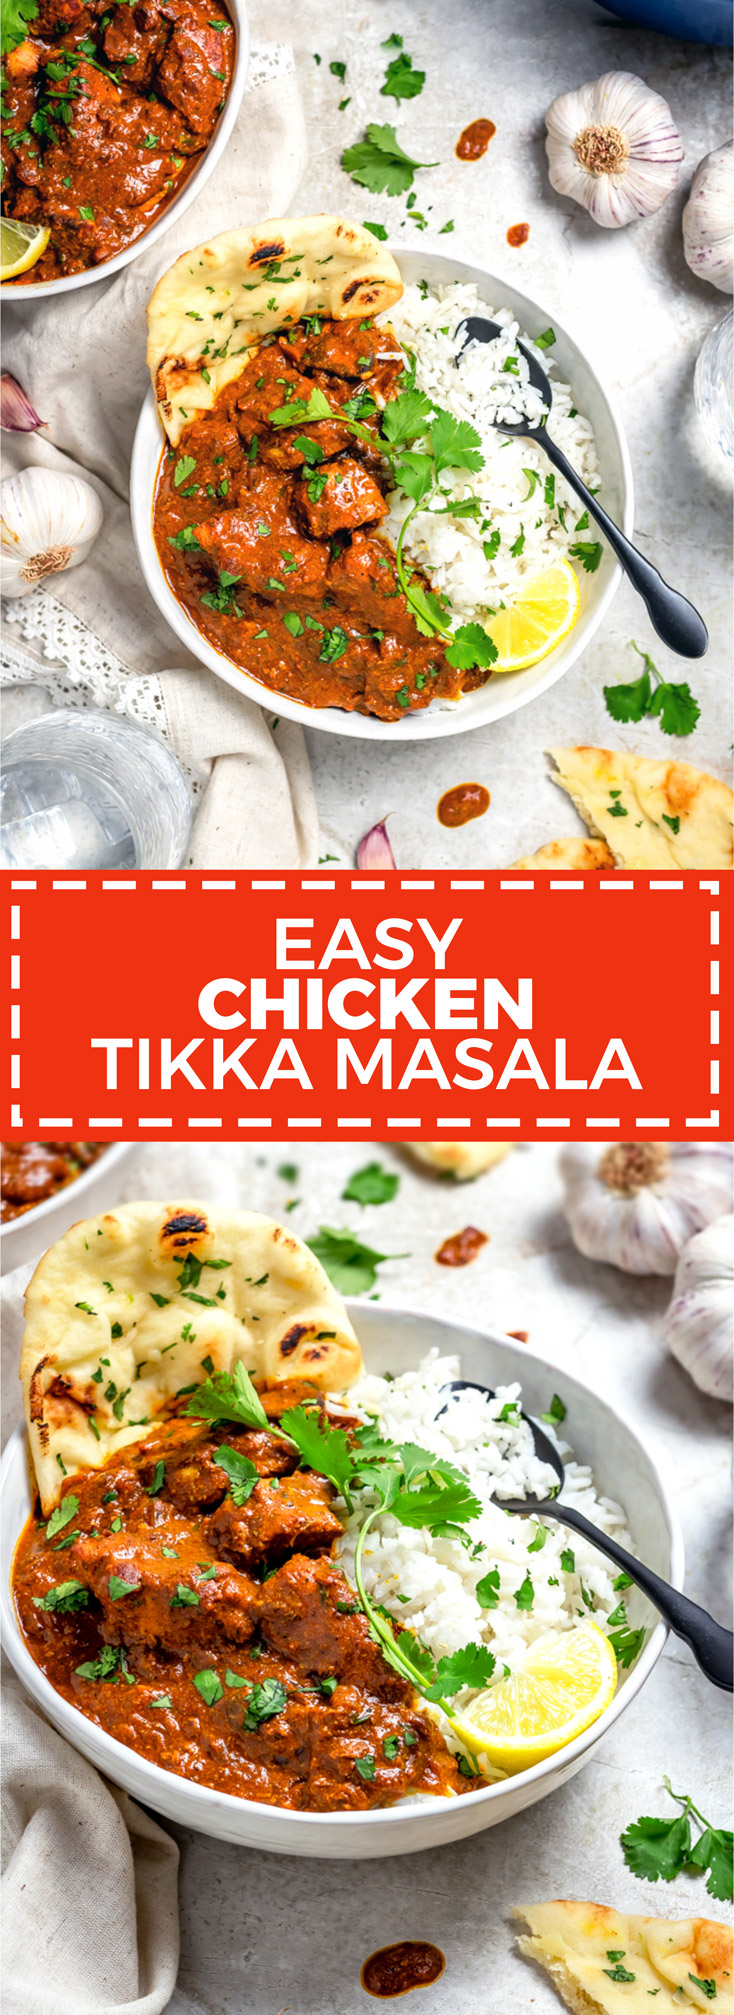 Easy Chicken Tikka Masala. Briefly marinating in a spiced yogurt mixture keeps the chicken in this homemade Indian-inspired recipe tender and juicy, even after charring the exterior for maximum flavor. The star of the show, however, might not be the chicken at all. It's all about that creamy, comforting, flavor-packed curry sauce! | hostthetoast.com